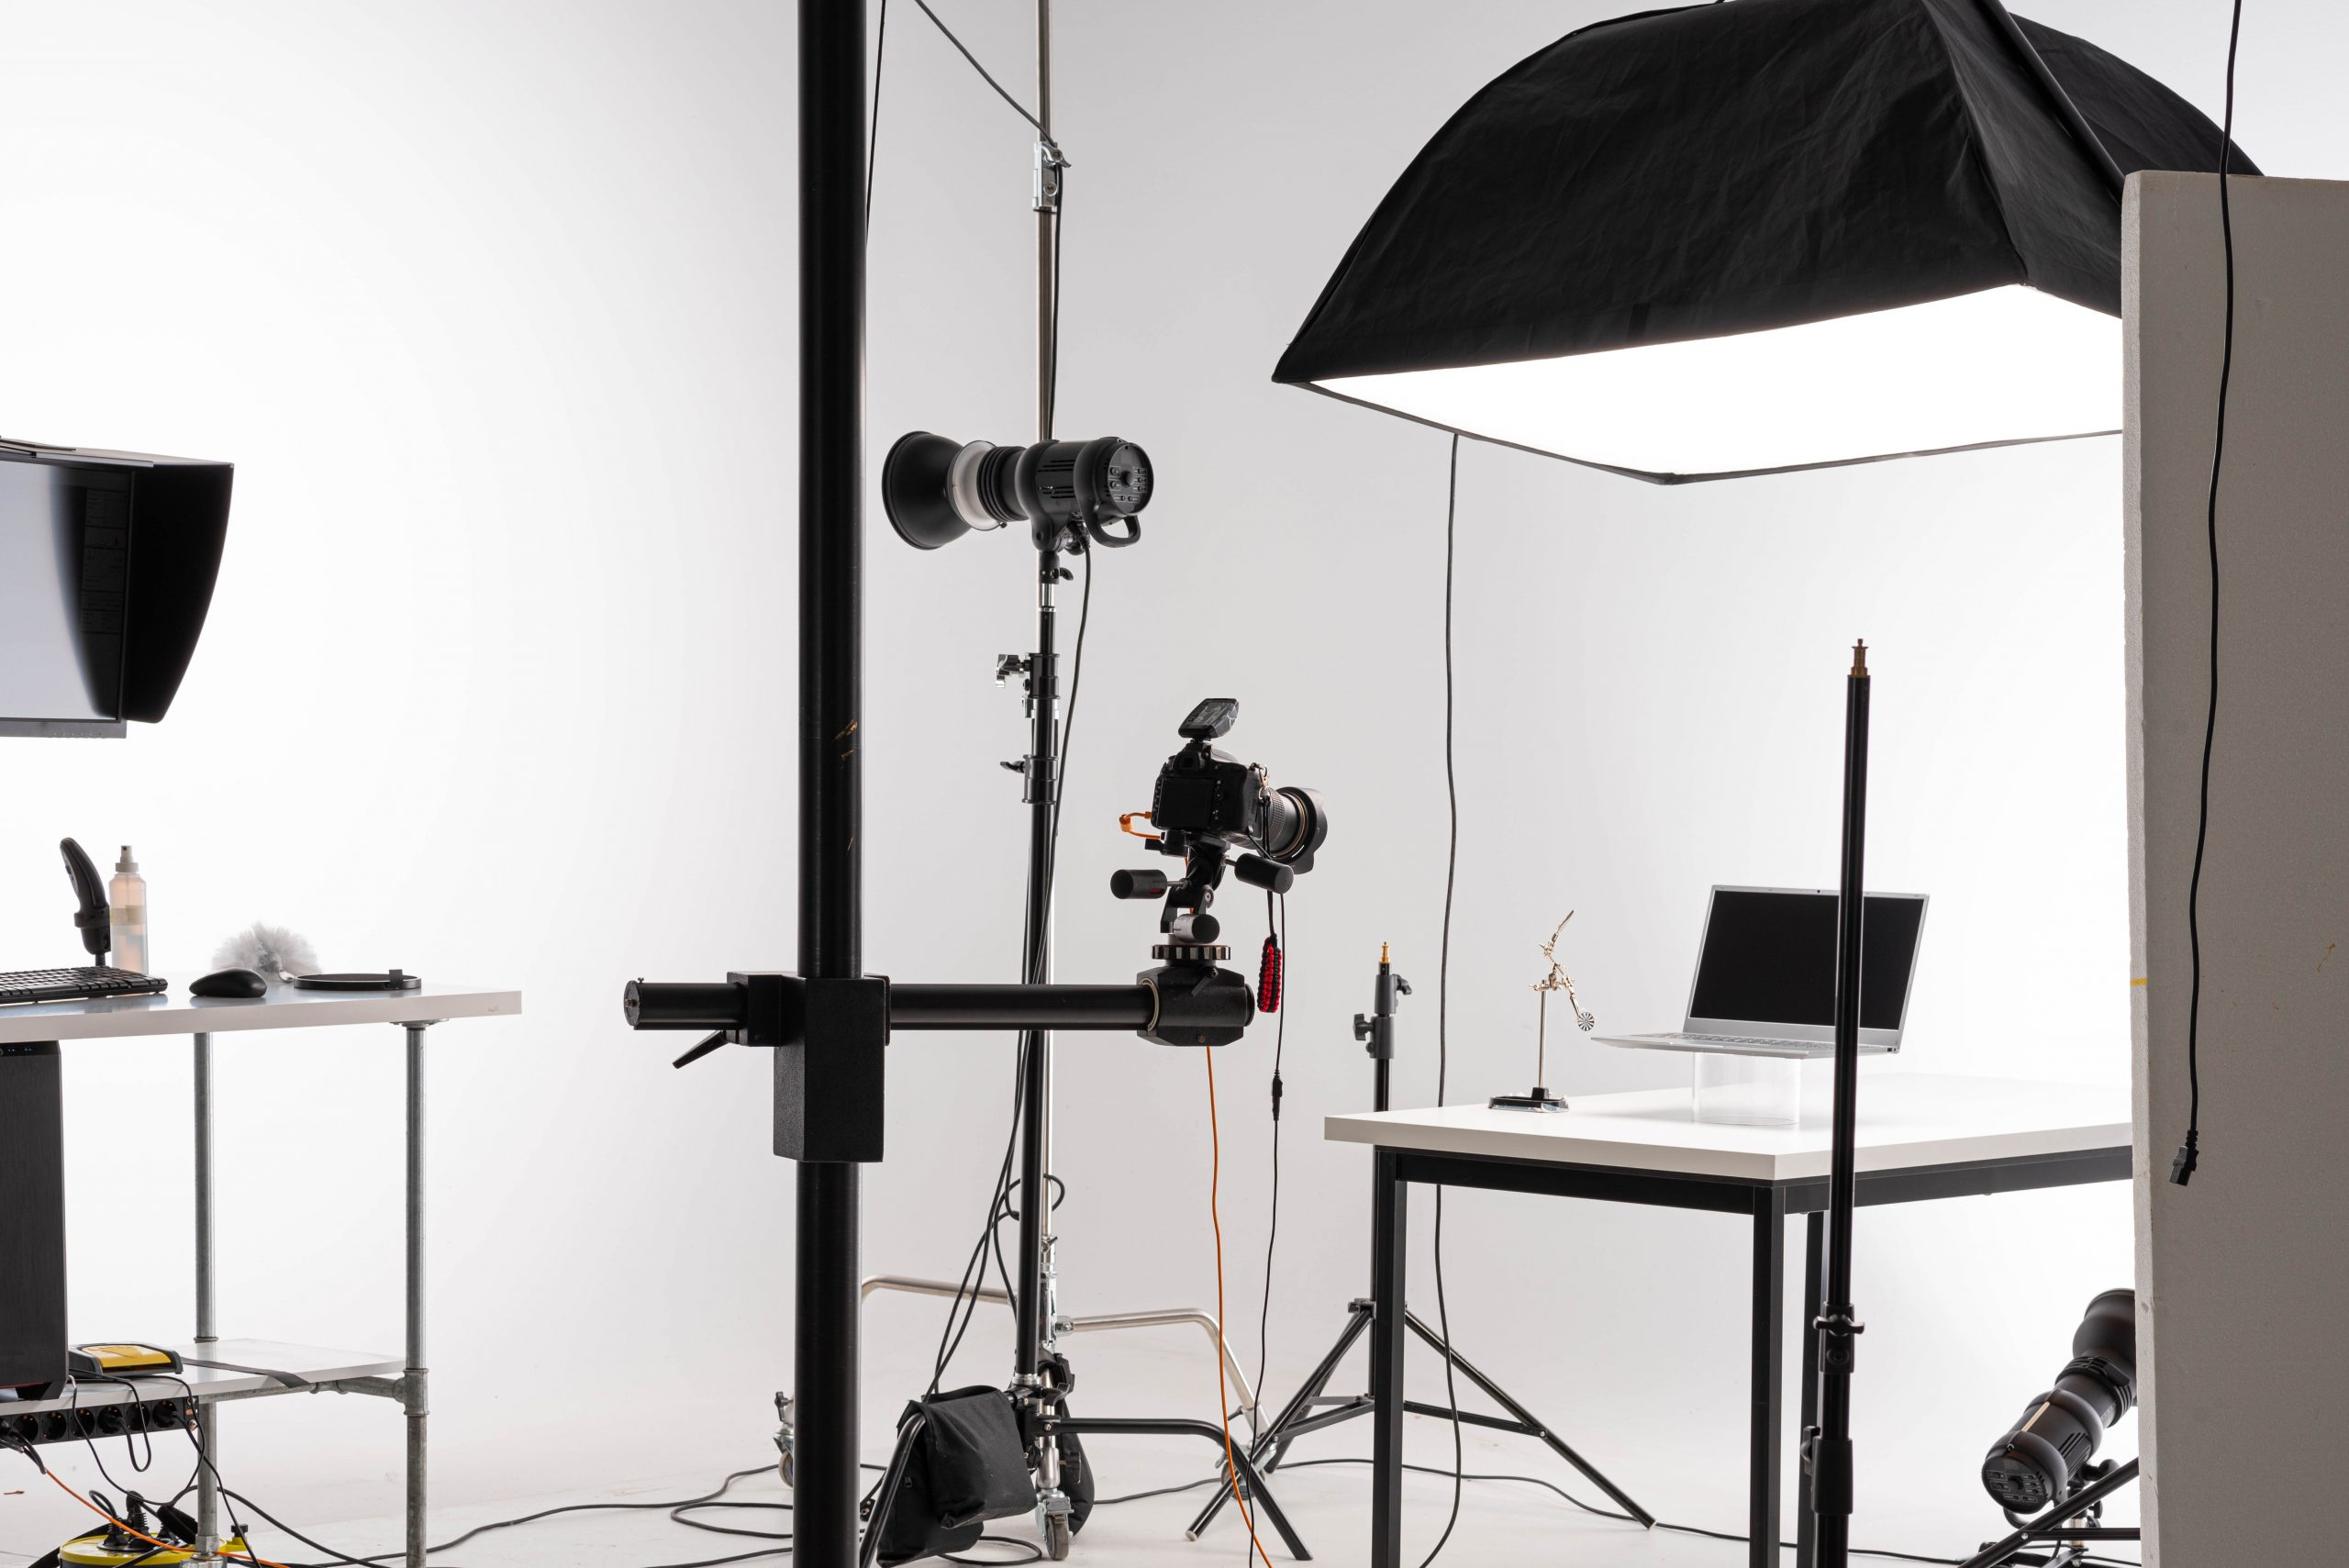 Product photography session in professional photostudio. High quality photo